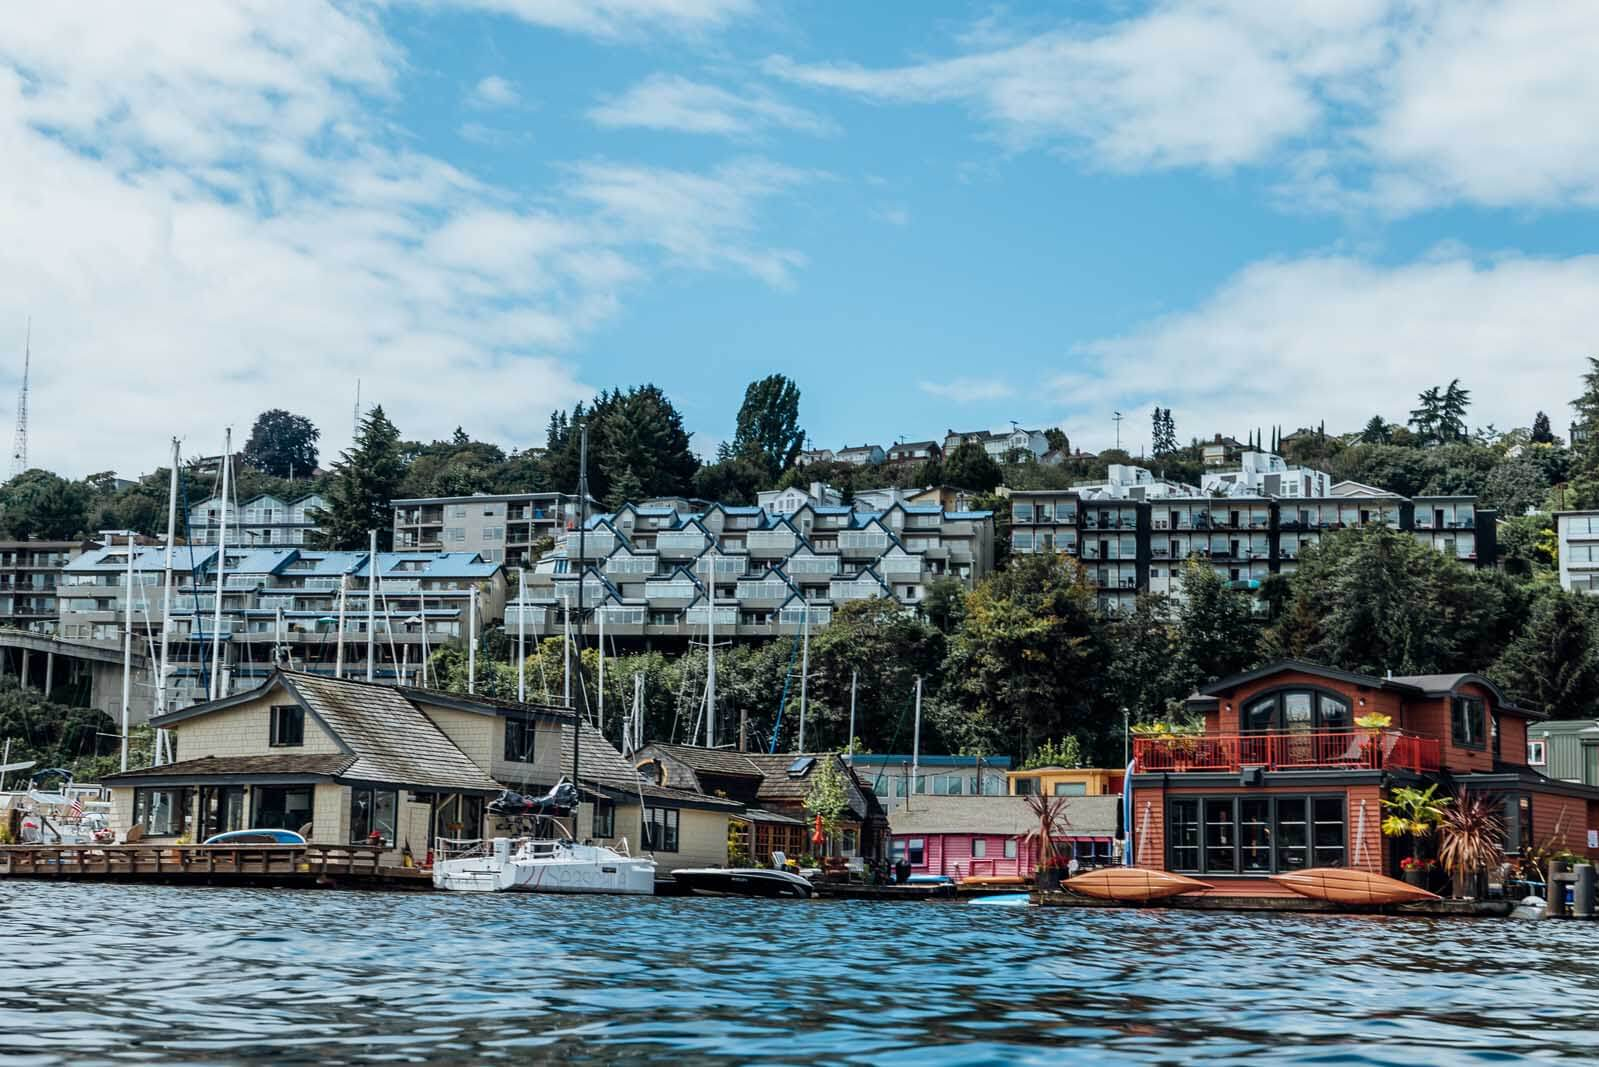 House Boats in Seattle Washington on Lake Union